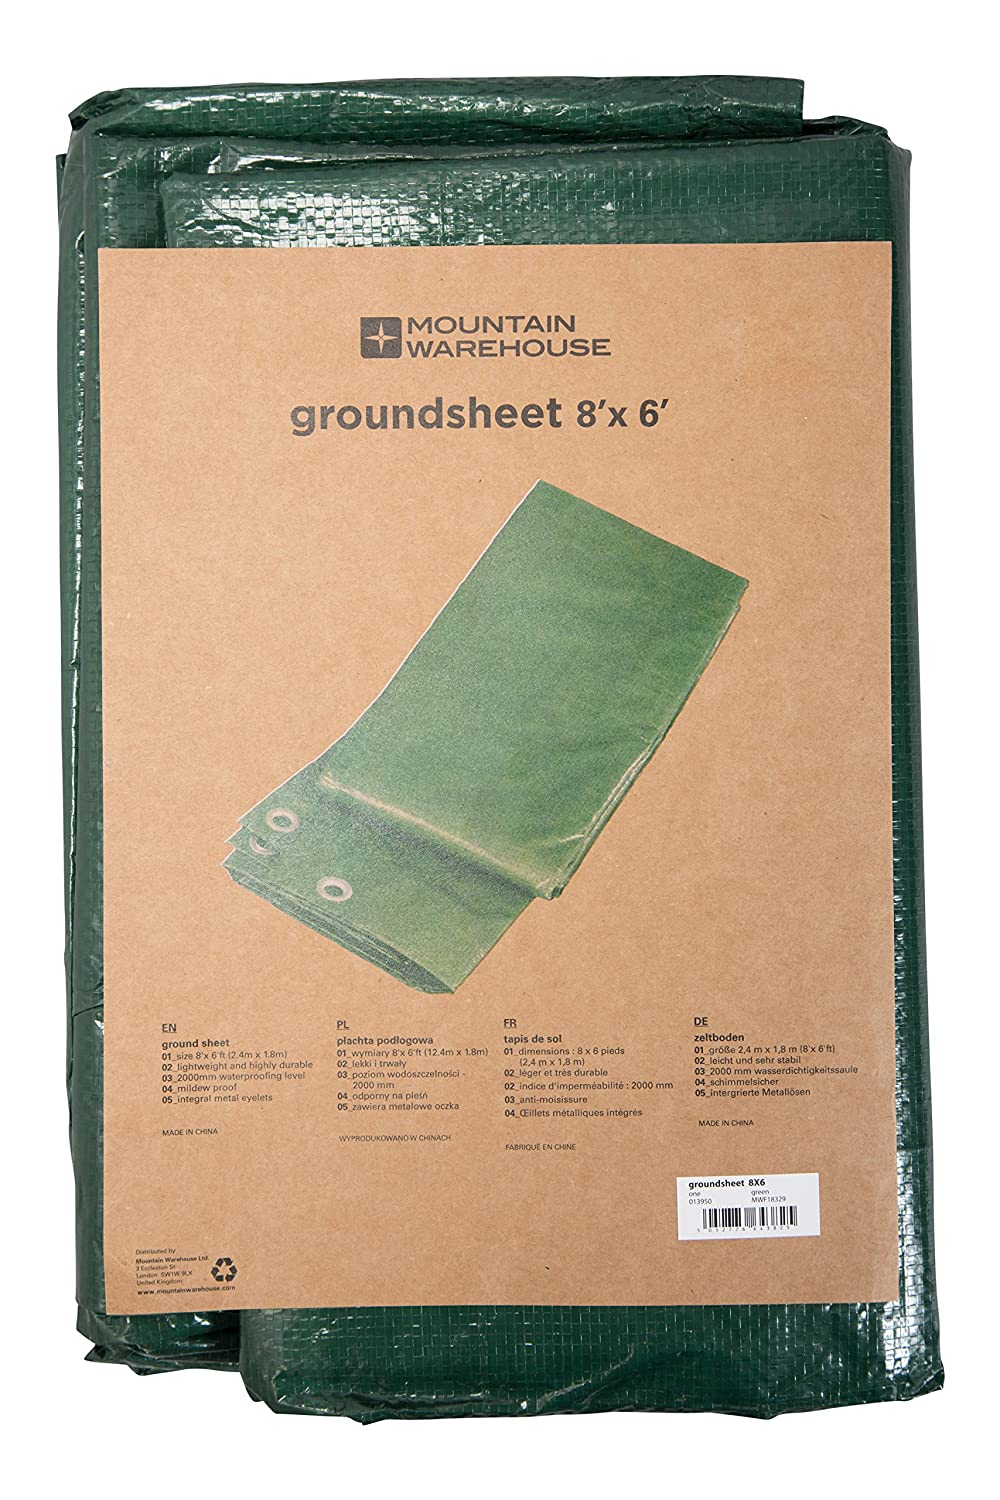 Mountain Warehouse Groundsheet 8x6 - Waterproof, Mildewproof Shelter Tent, Metal Eyelets Canopy Cover, Lightweight, Easy Pack Camping Tarp - For Picnics, Outdoor, Hiking Hiking Green